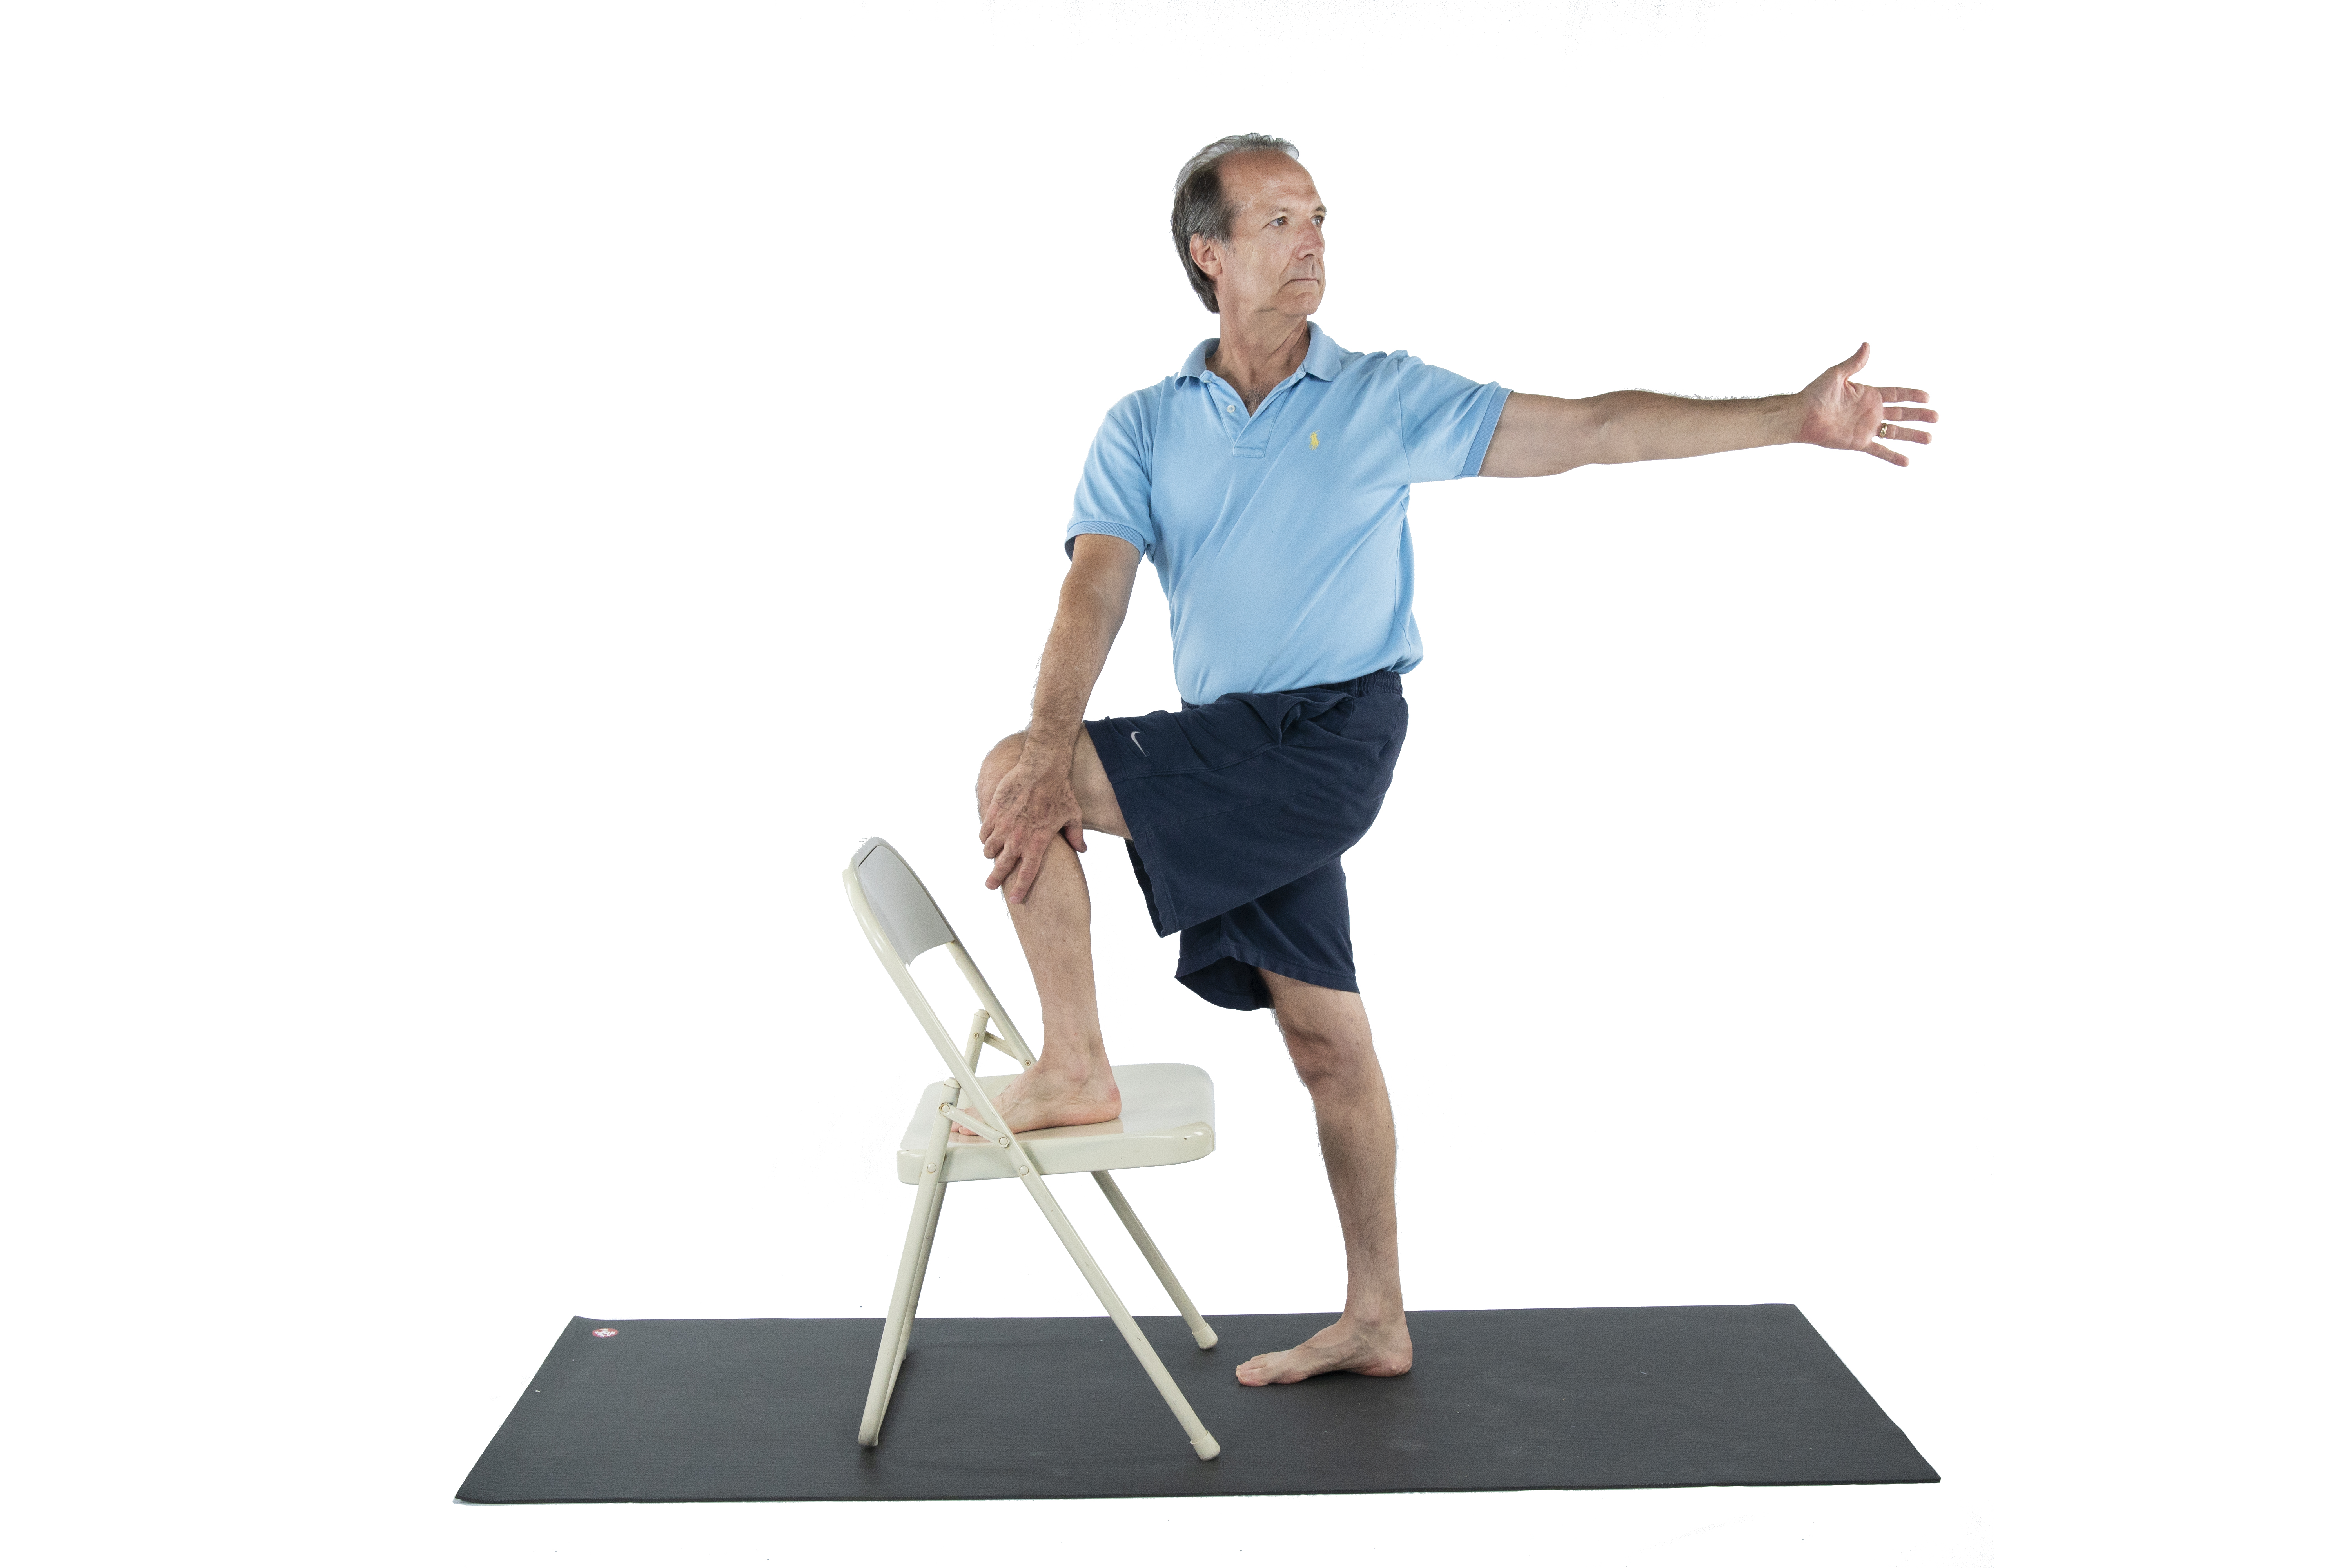 Yoga May Aid in Treatment of Stroke, MS, Parkinson's